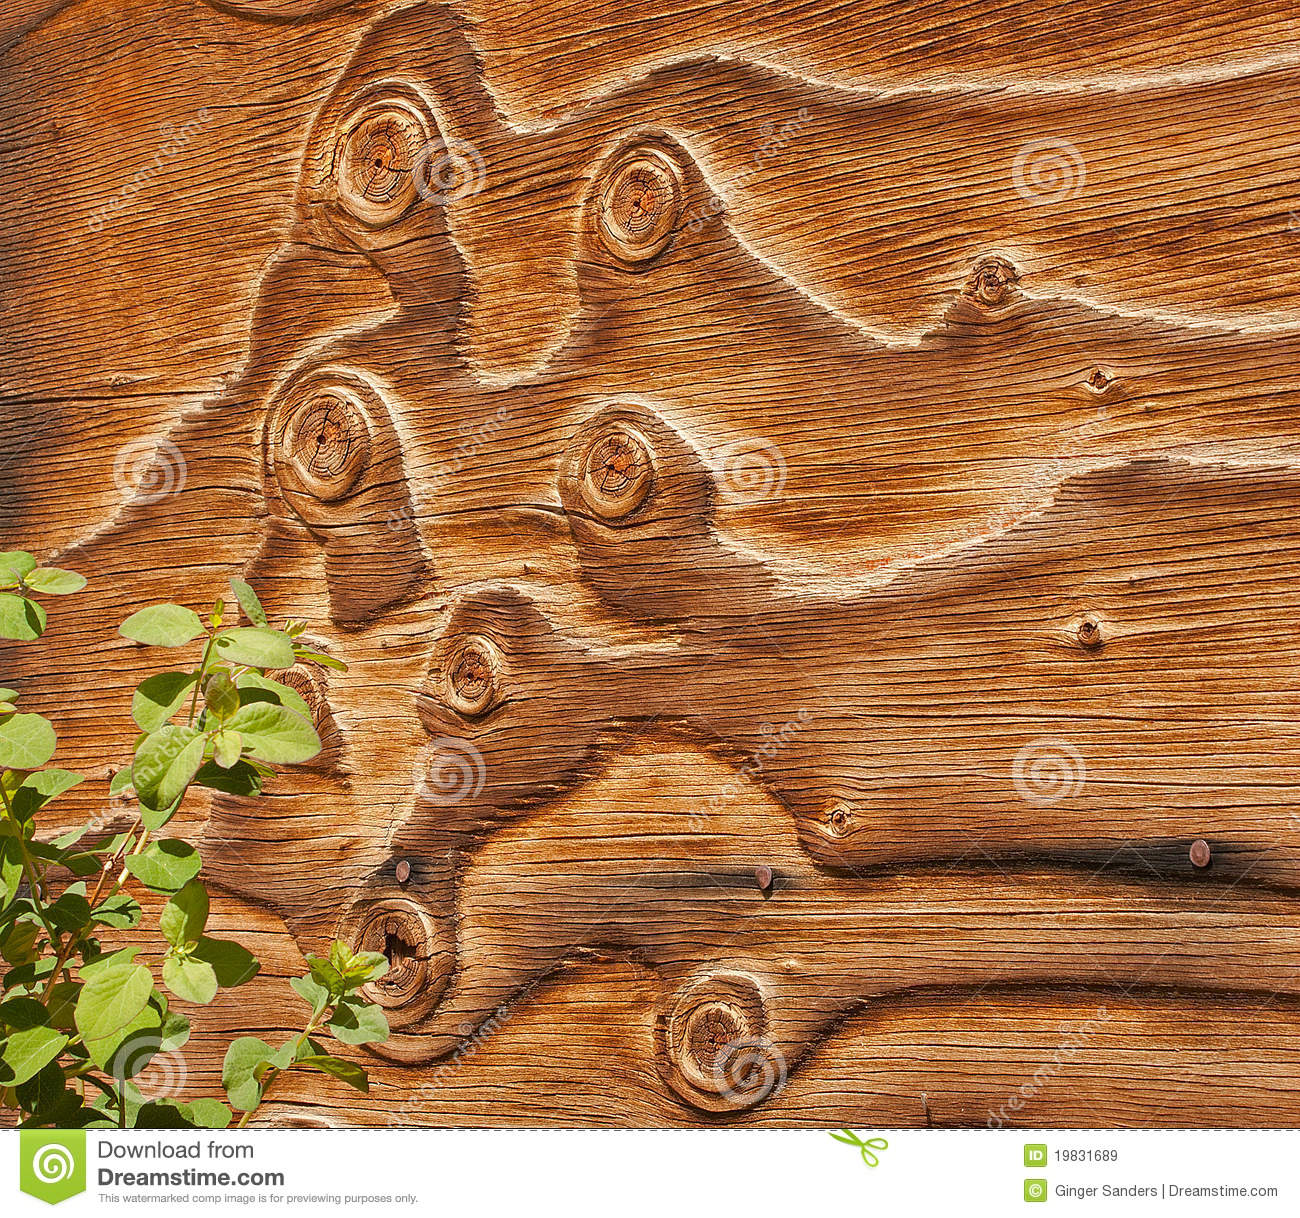 Curly Barn Wood Siding with Plants